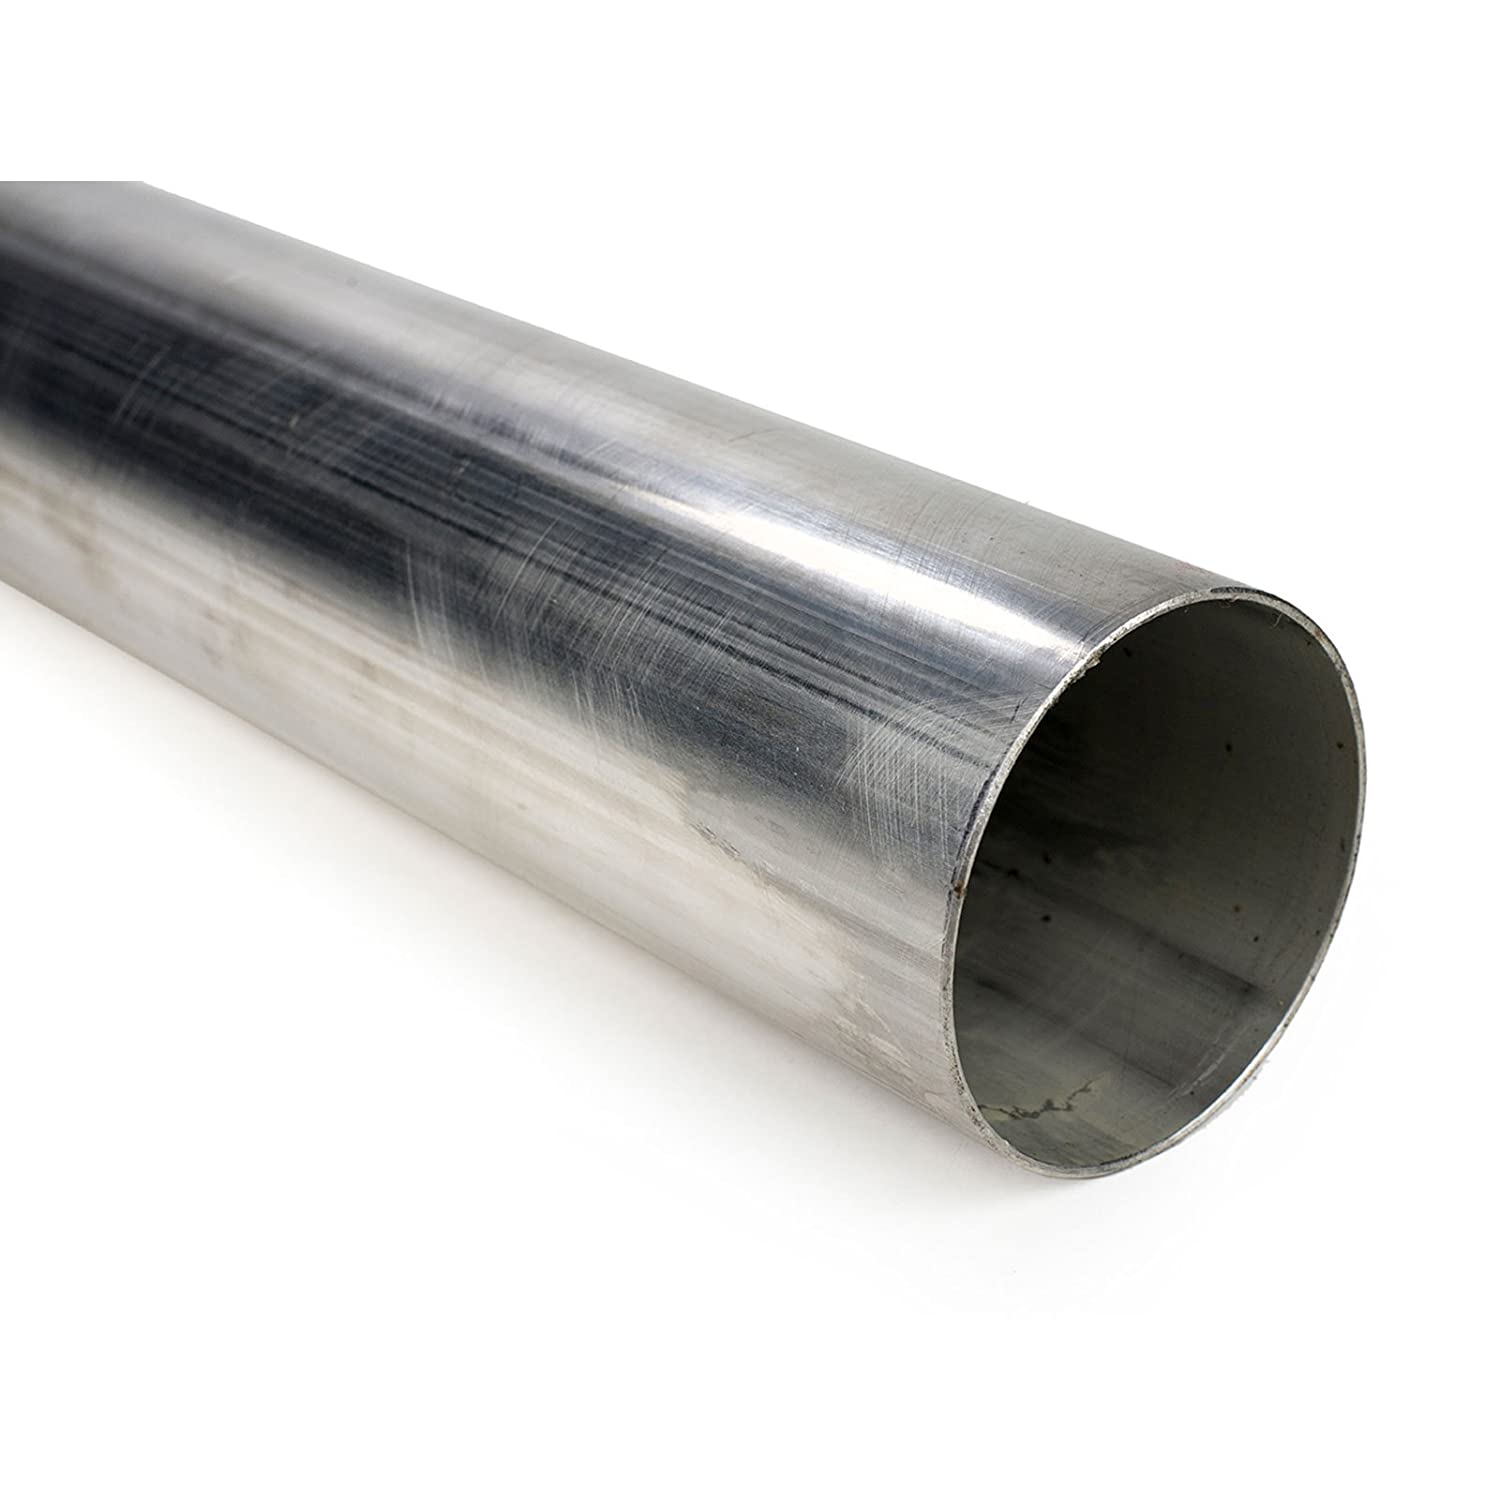 Squirrelly 2' 304 Stainless Steel Straight Pipe Tubing 16 Gauge Exhaust 1 FOOT Squirrelly Performance Parts